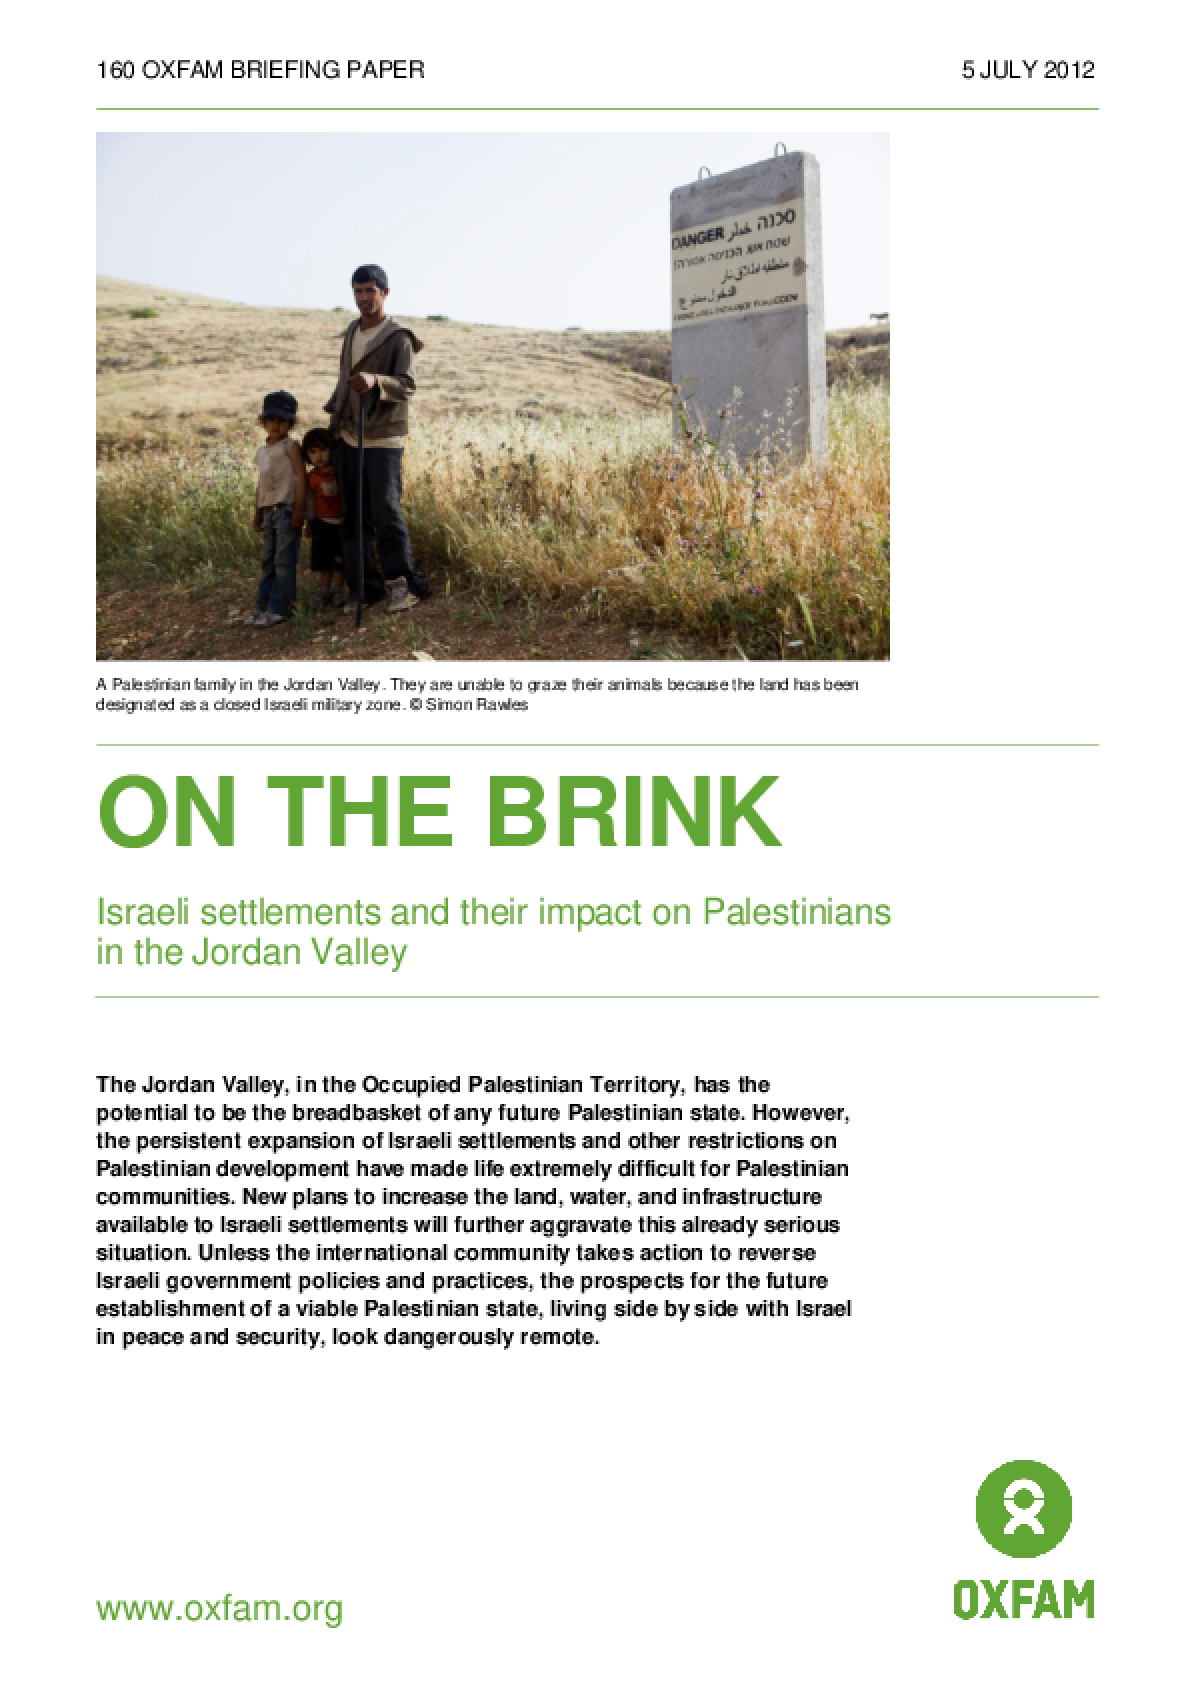 On the Brink: Israeli settlements and their impact on Palestinians in the Jordan Valley